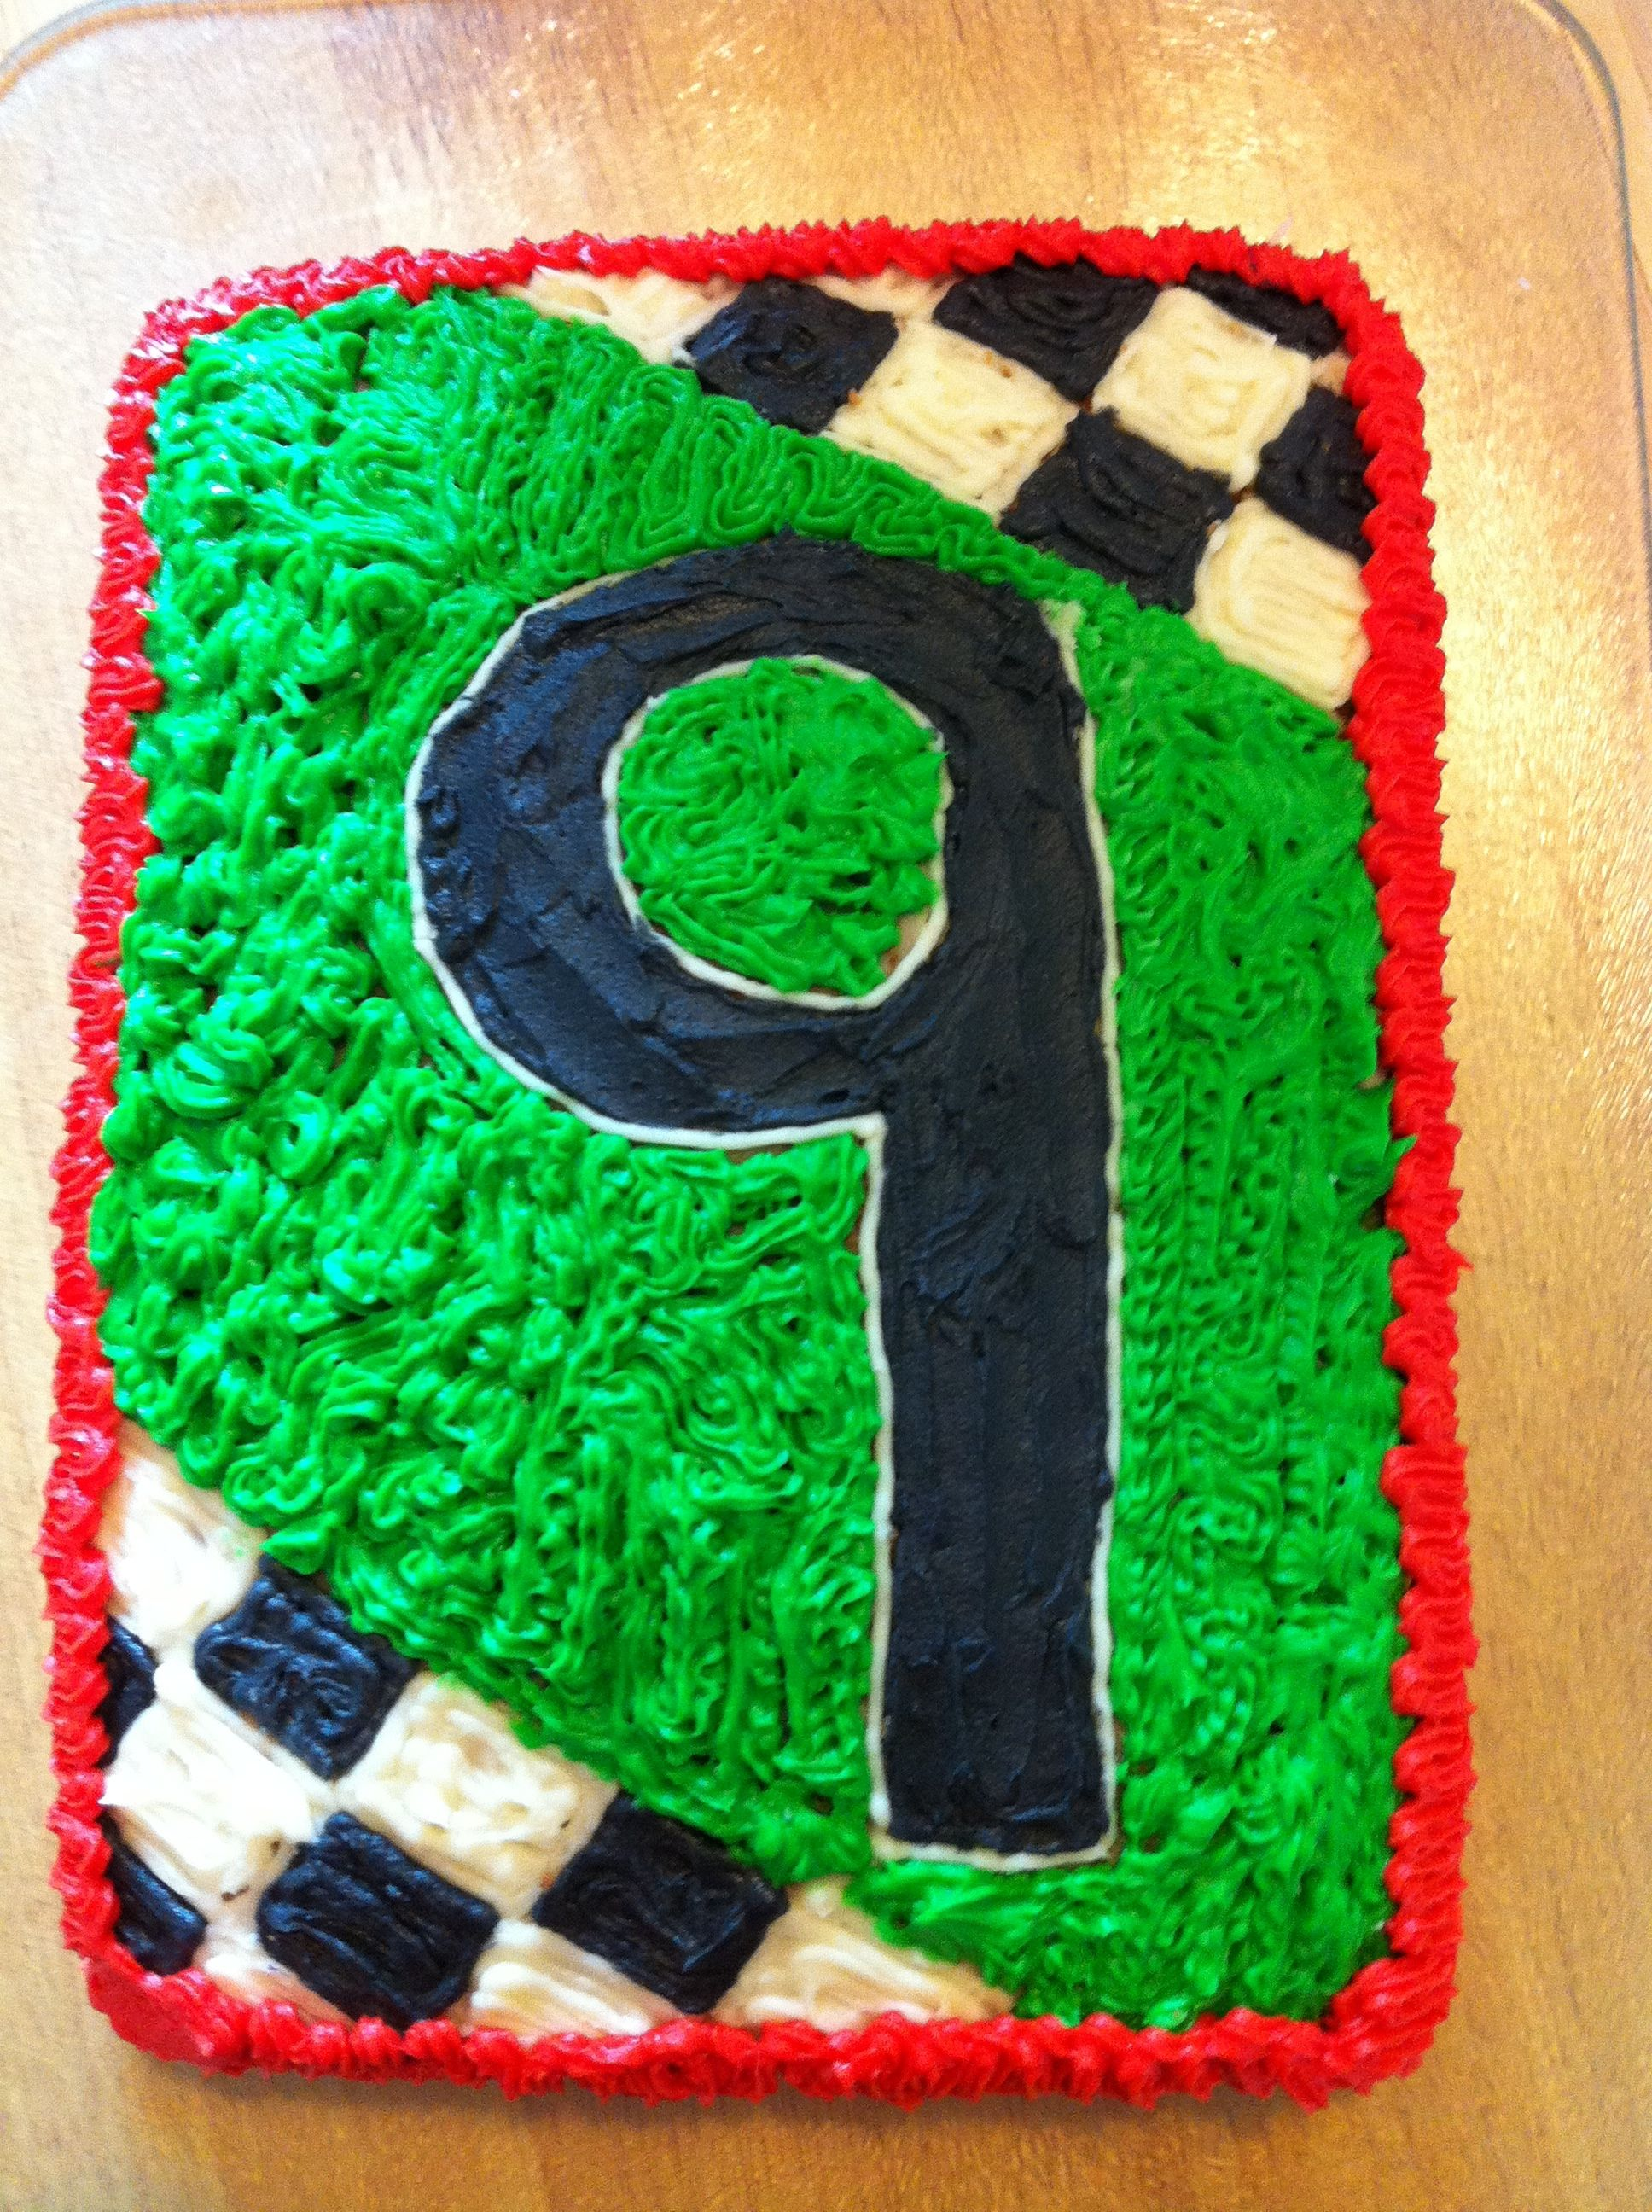 9 Year Old Boys Birthday Cake